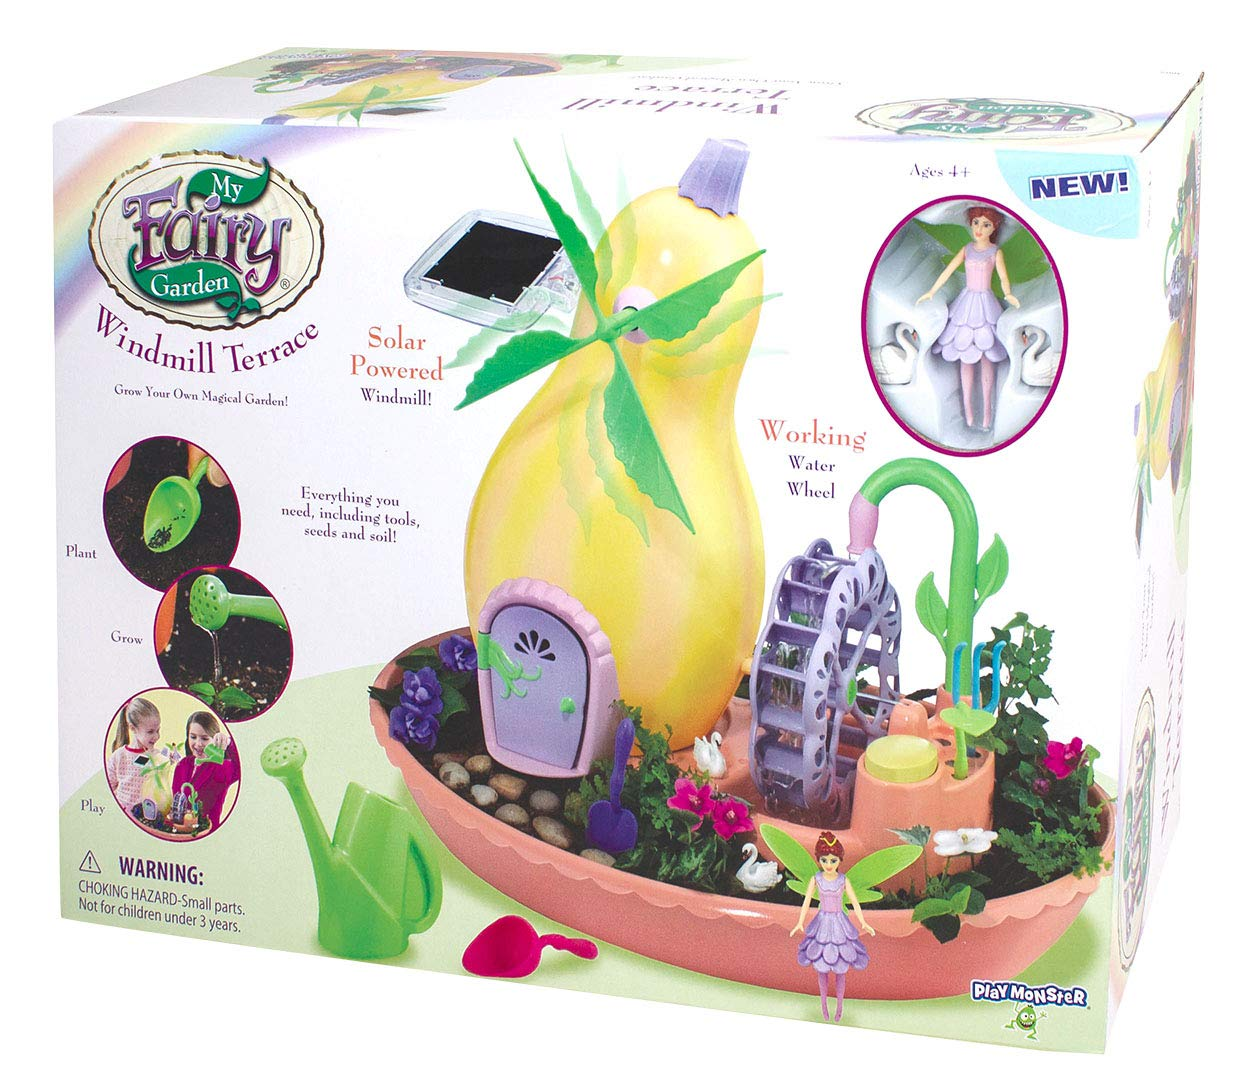 My Fairy 3665 Windmill Terrace Solar Power Playset - Grow Your Own Magical Garden, Yellow/Pink/Green/Purple